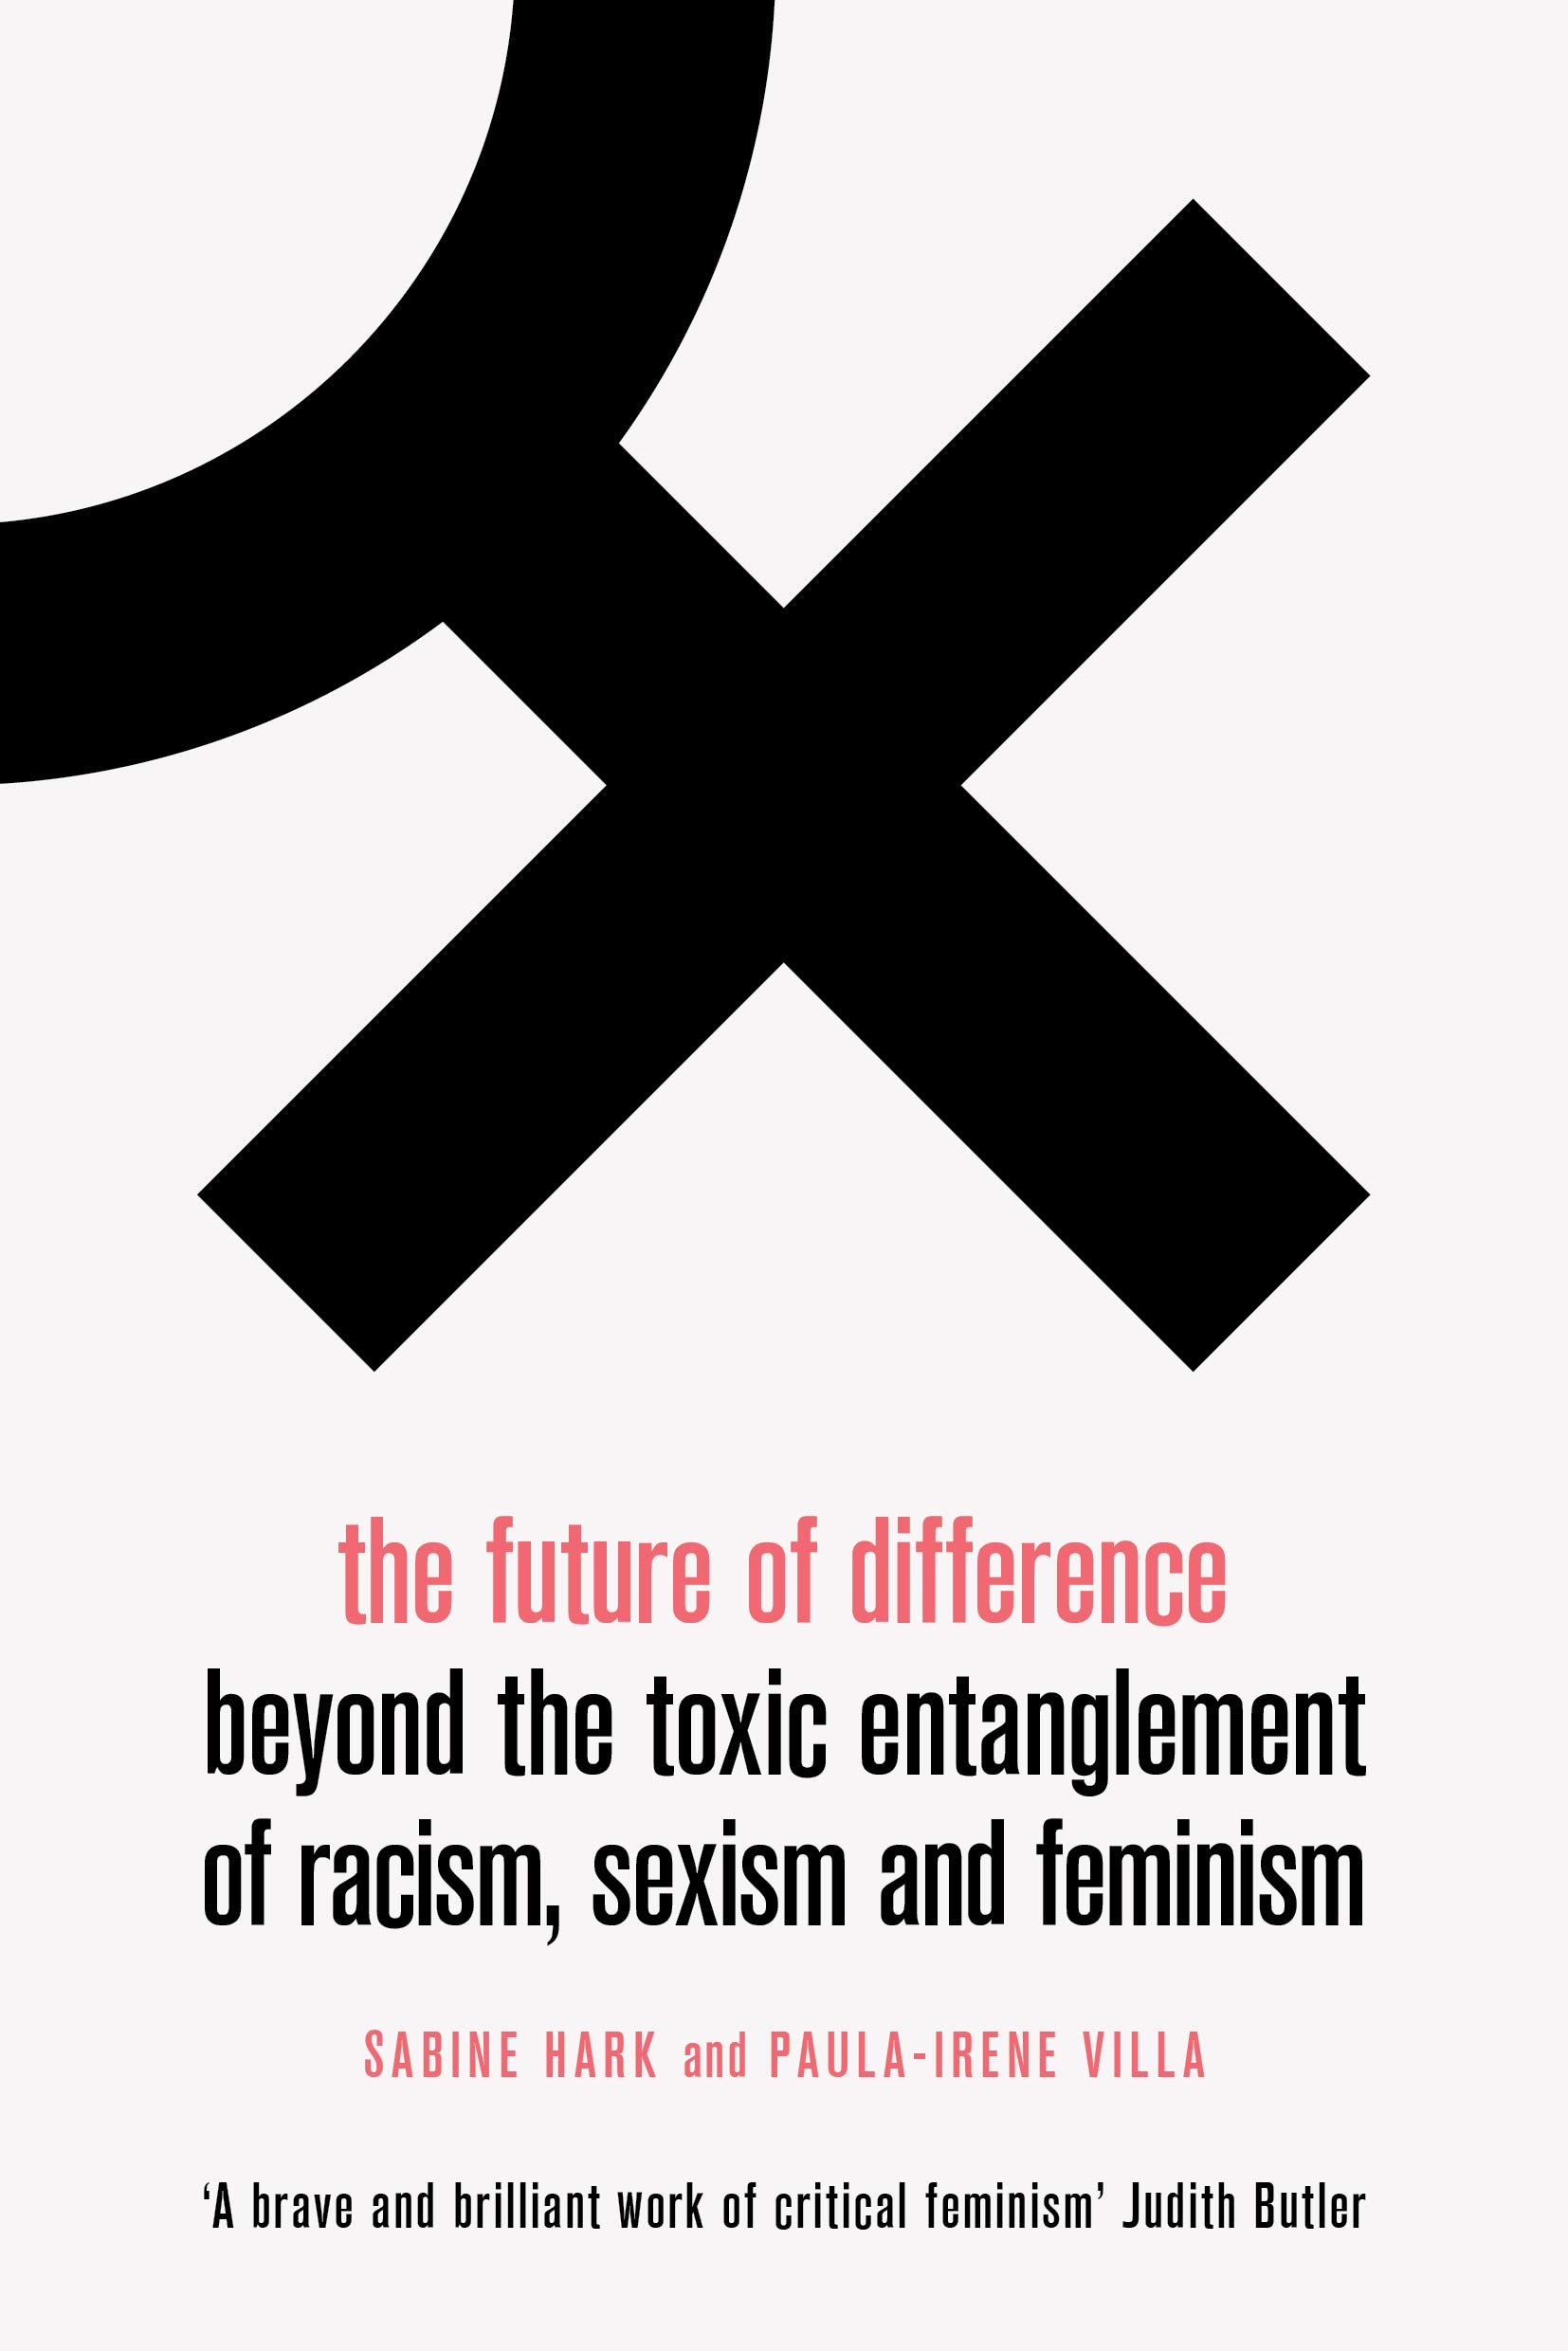 The Future of Difference: Beyond the Toxic Entanglement of Racism, Sexism and Feminism